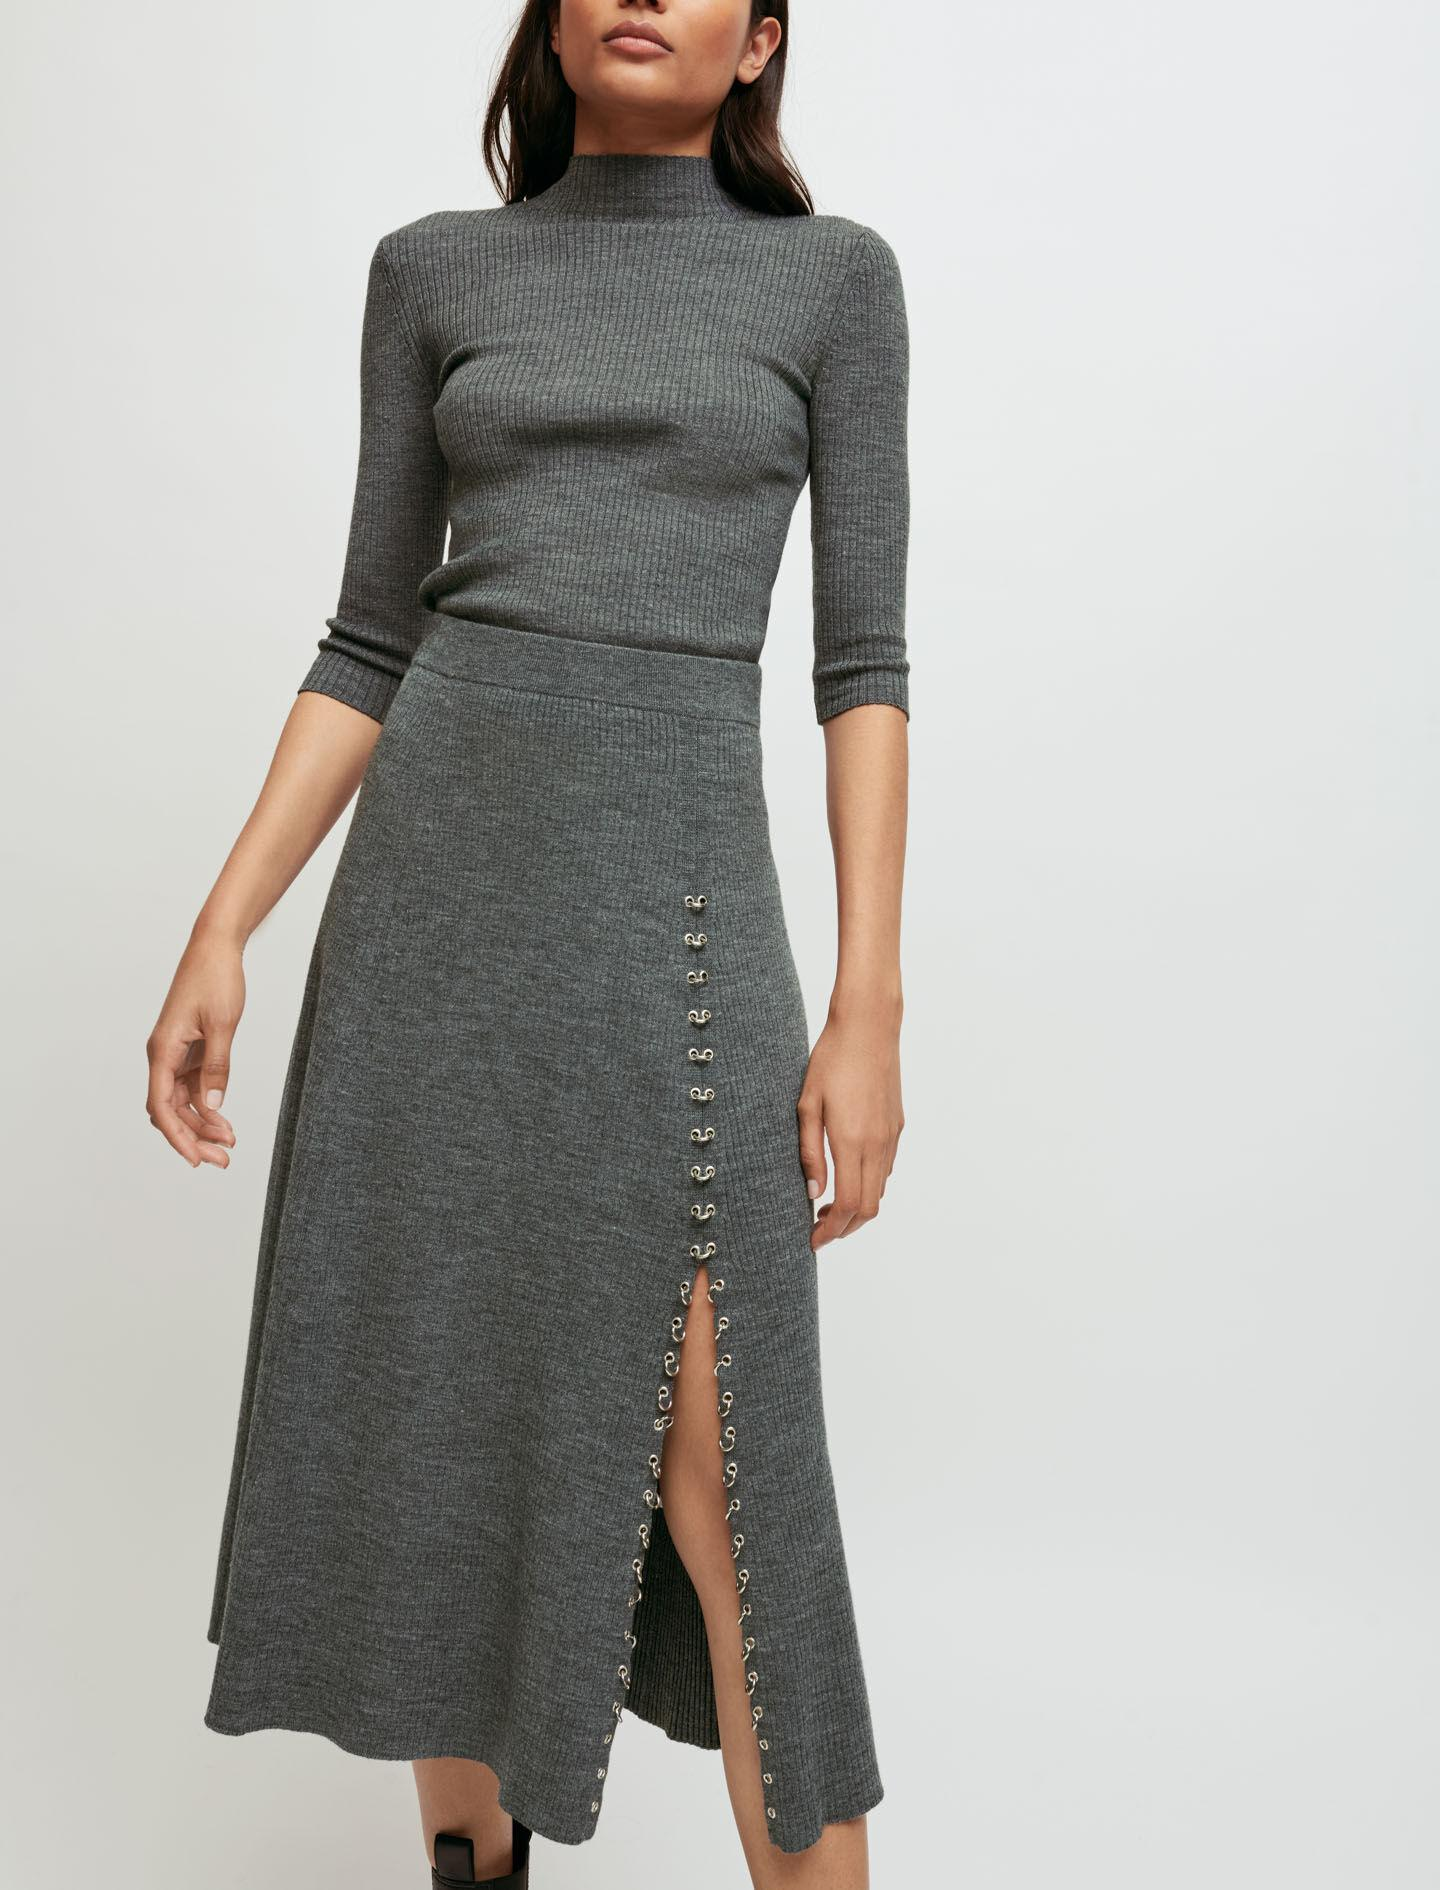 KNITTED SLIT SKIRT WITH PIERCINGS 1